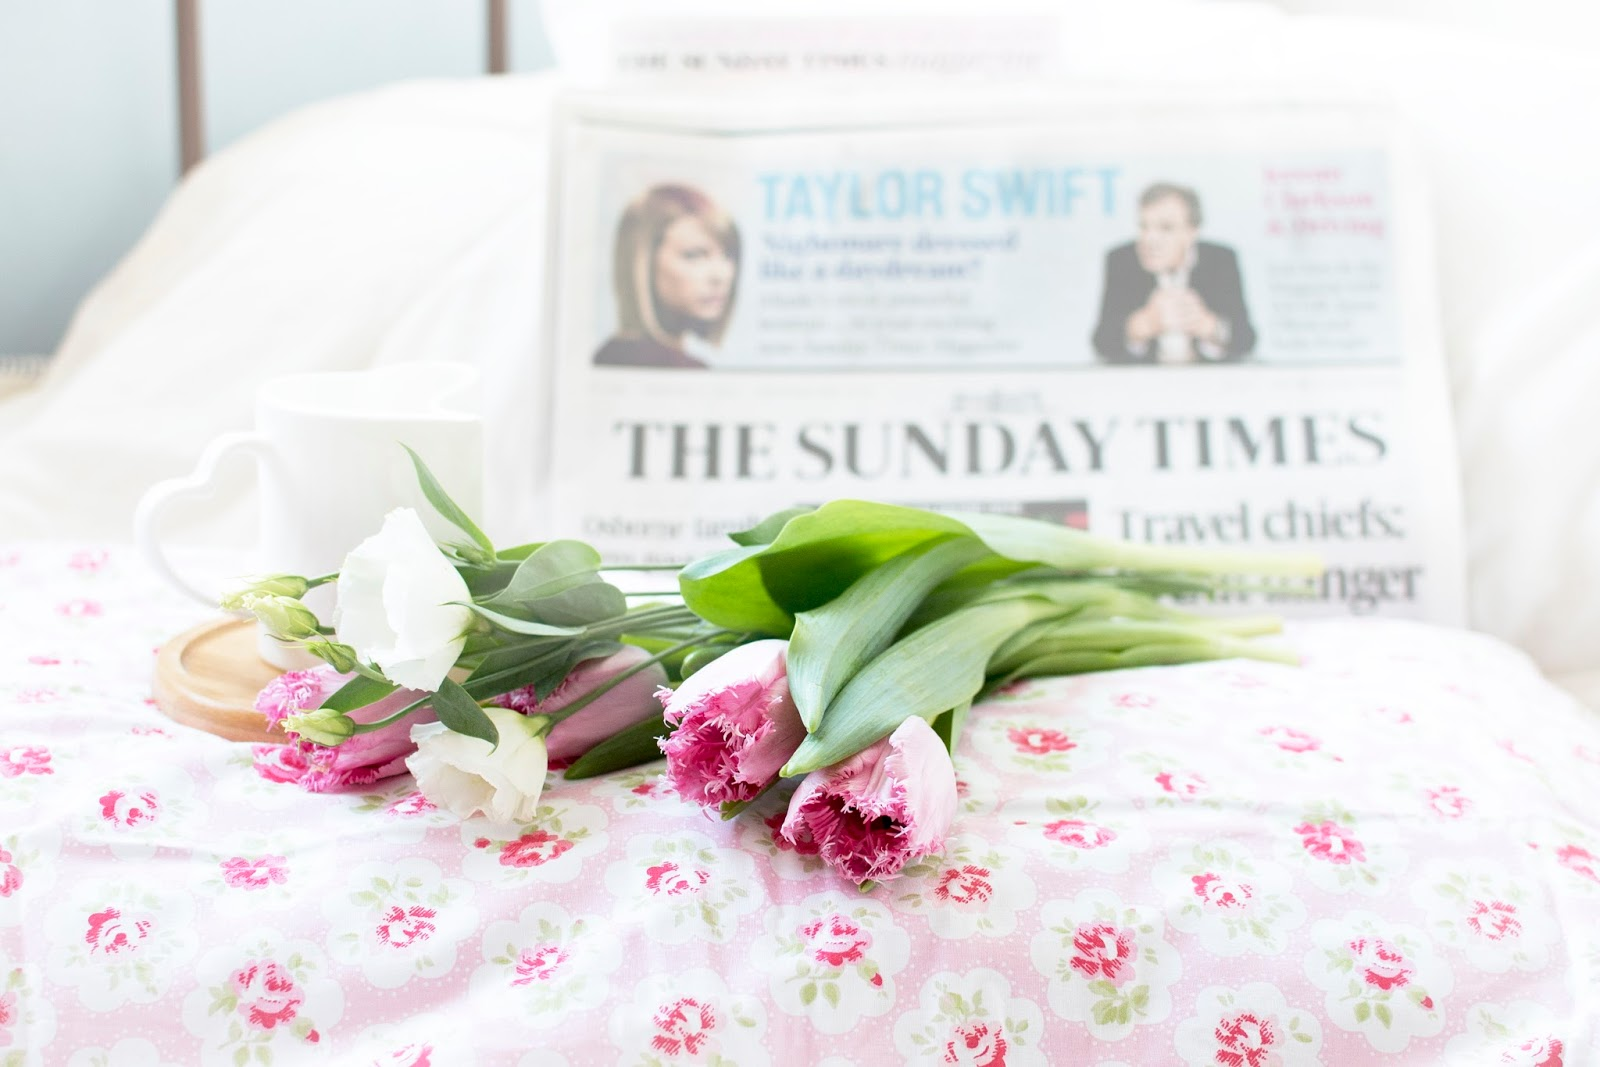 I'M STAYING IN BED: THE SUNDAY TIMES MAGAZINE